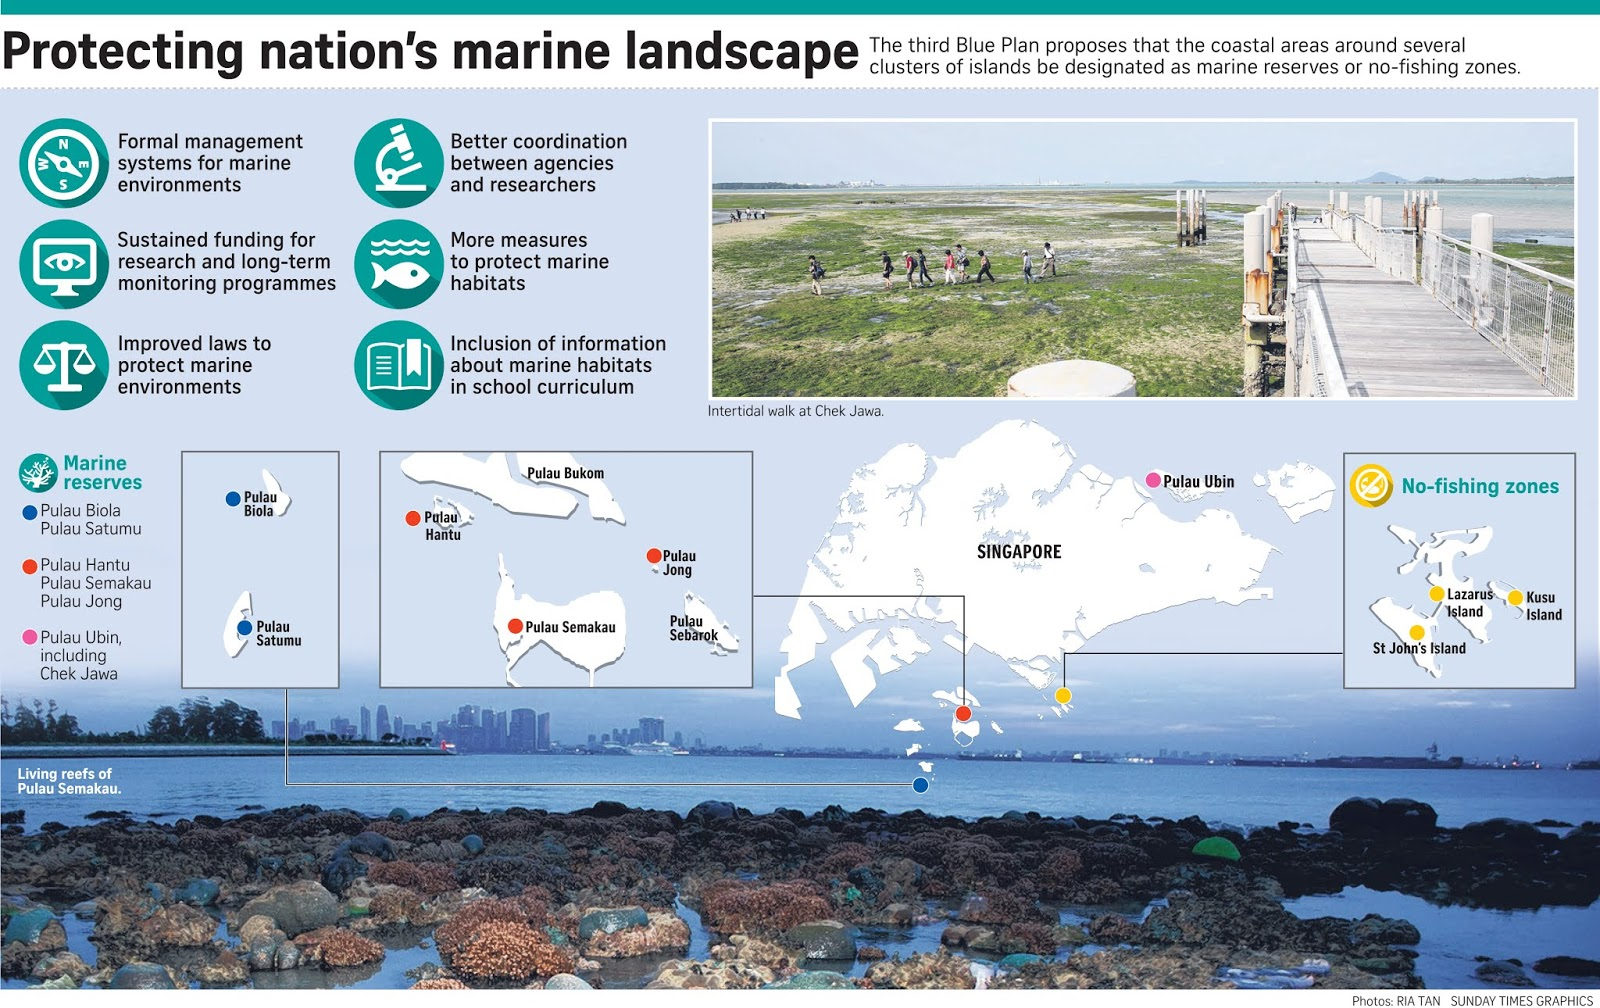 it also advocates better coordination between agencies and researchers further measures to protect singapore s remaining marine habitats and the inclusion